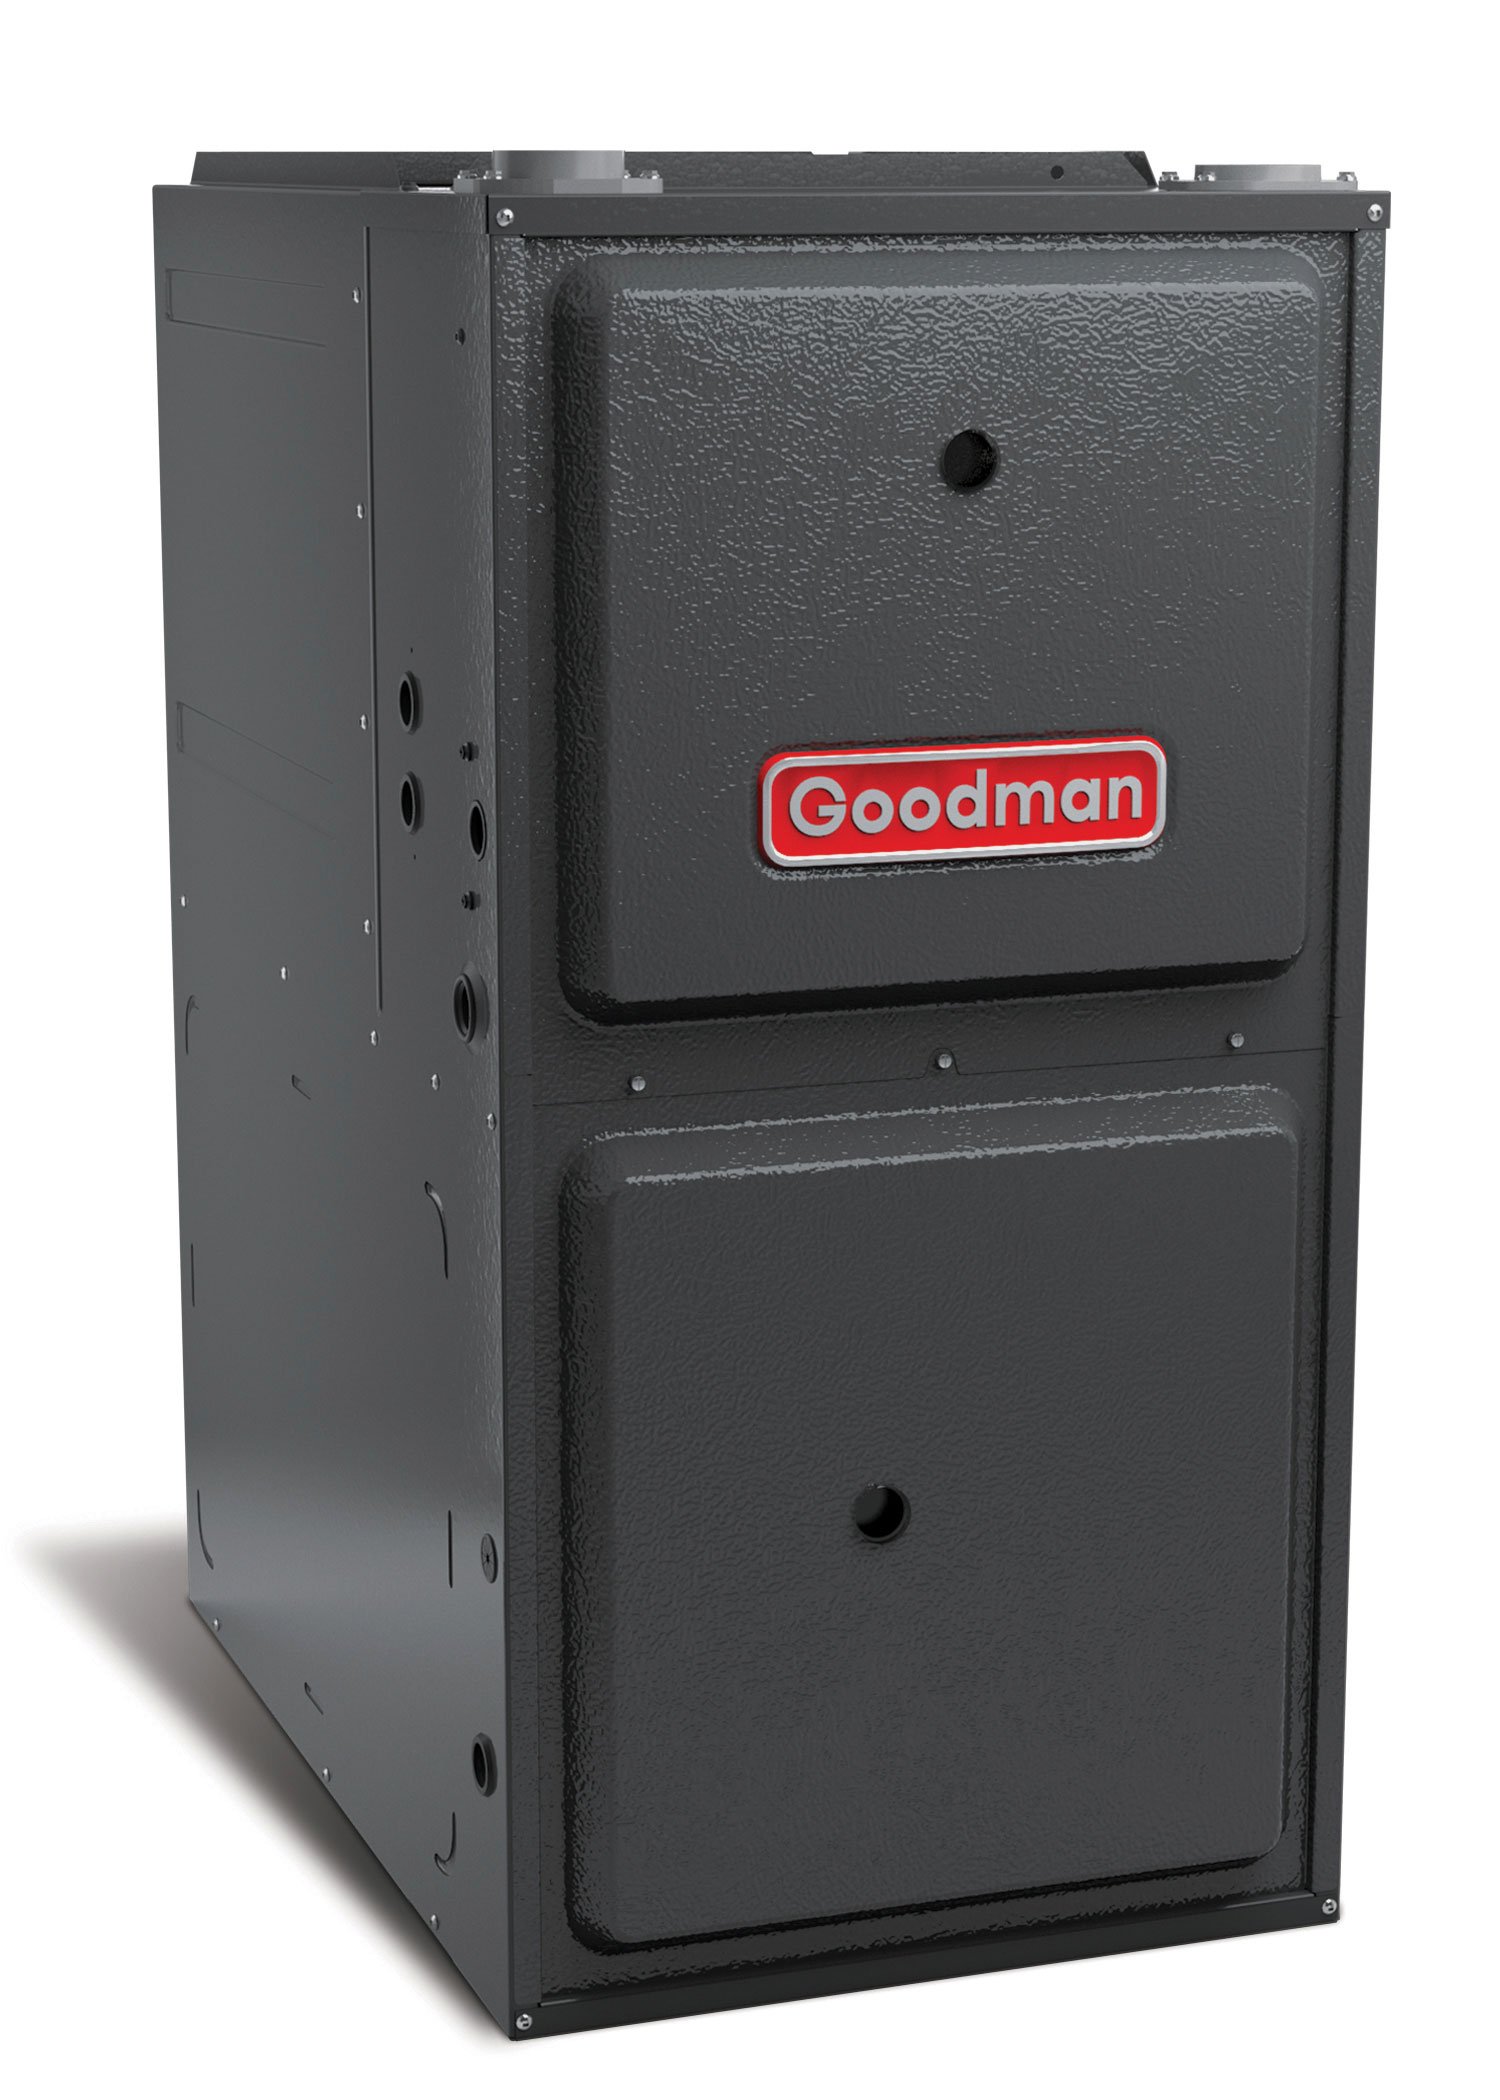 90% AFUEs from Goodman AC & Heating